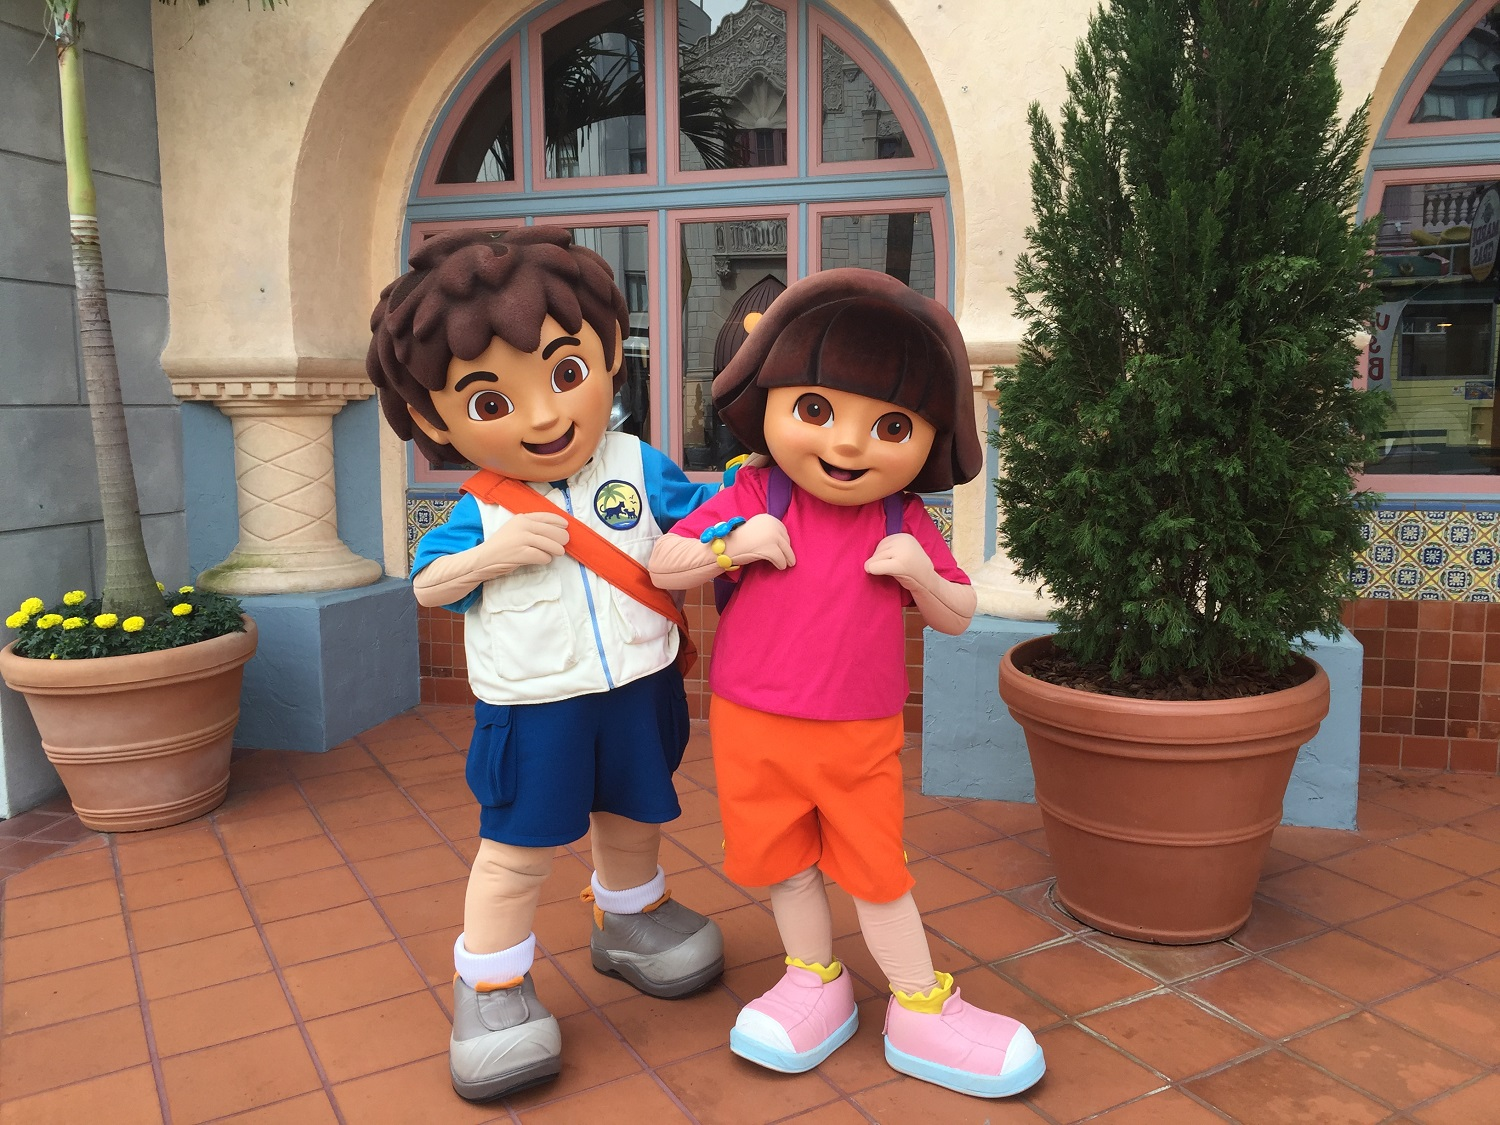 Some of the characters you can meet in Universal Studios Florida include Dora and Diego, SpongeBob and friends, the Scooby Gang, Simpsons characters, and Despicable Me characters.